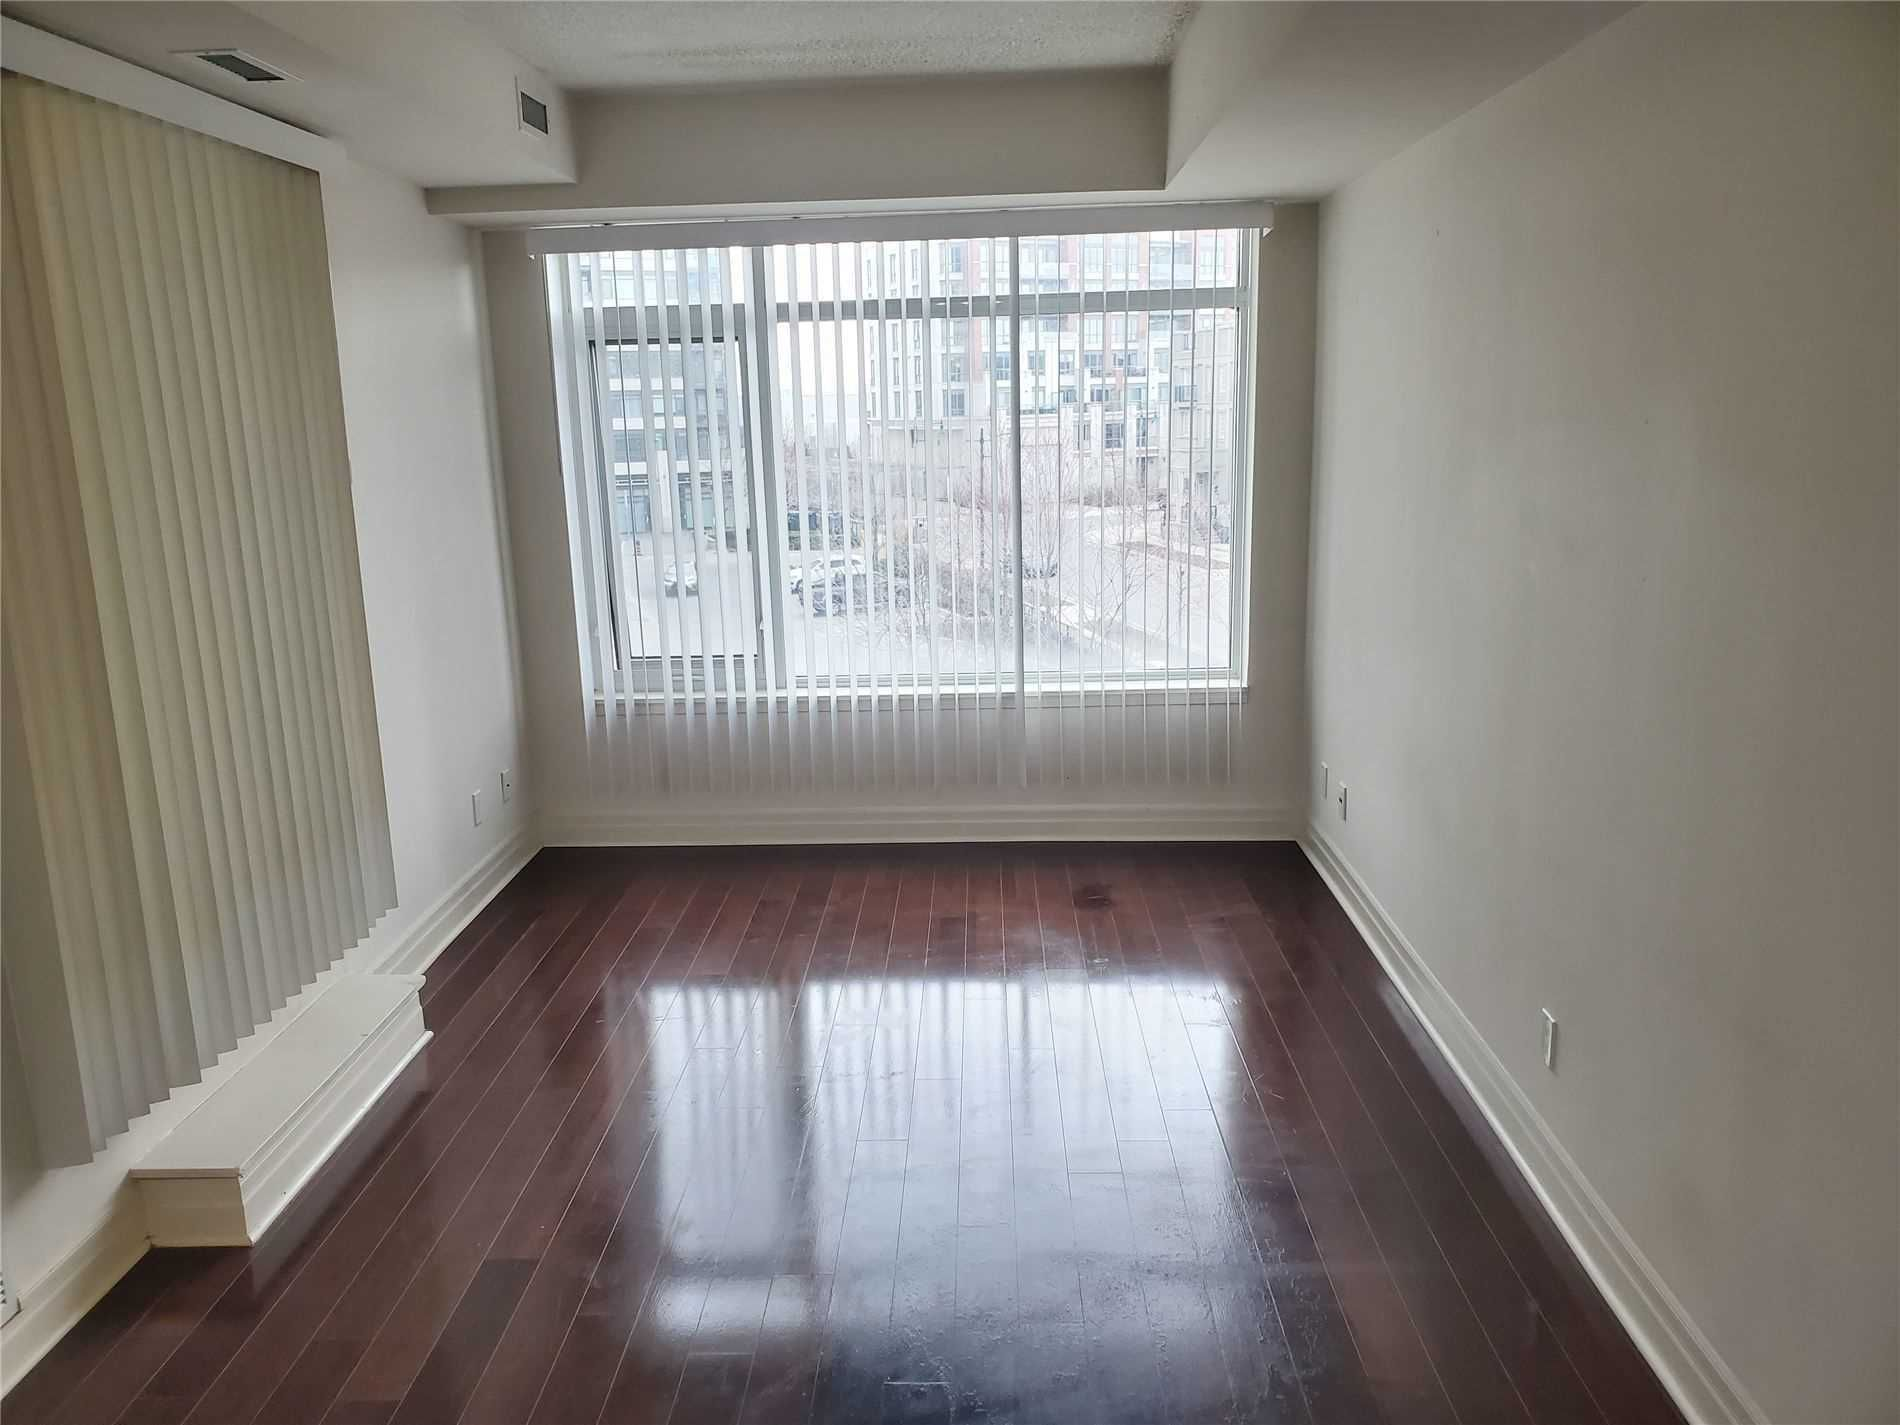 8130 Birchmount Rd, unit 302 for rent in Toronto - image #2